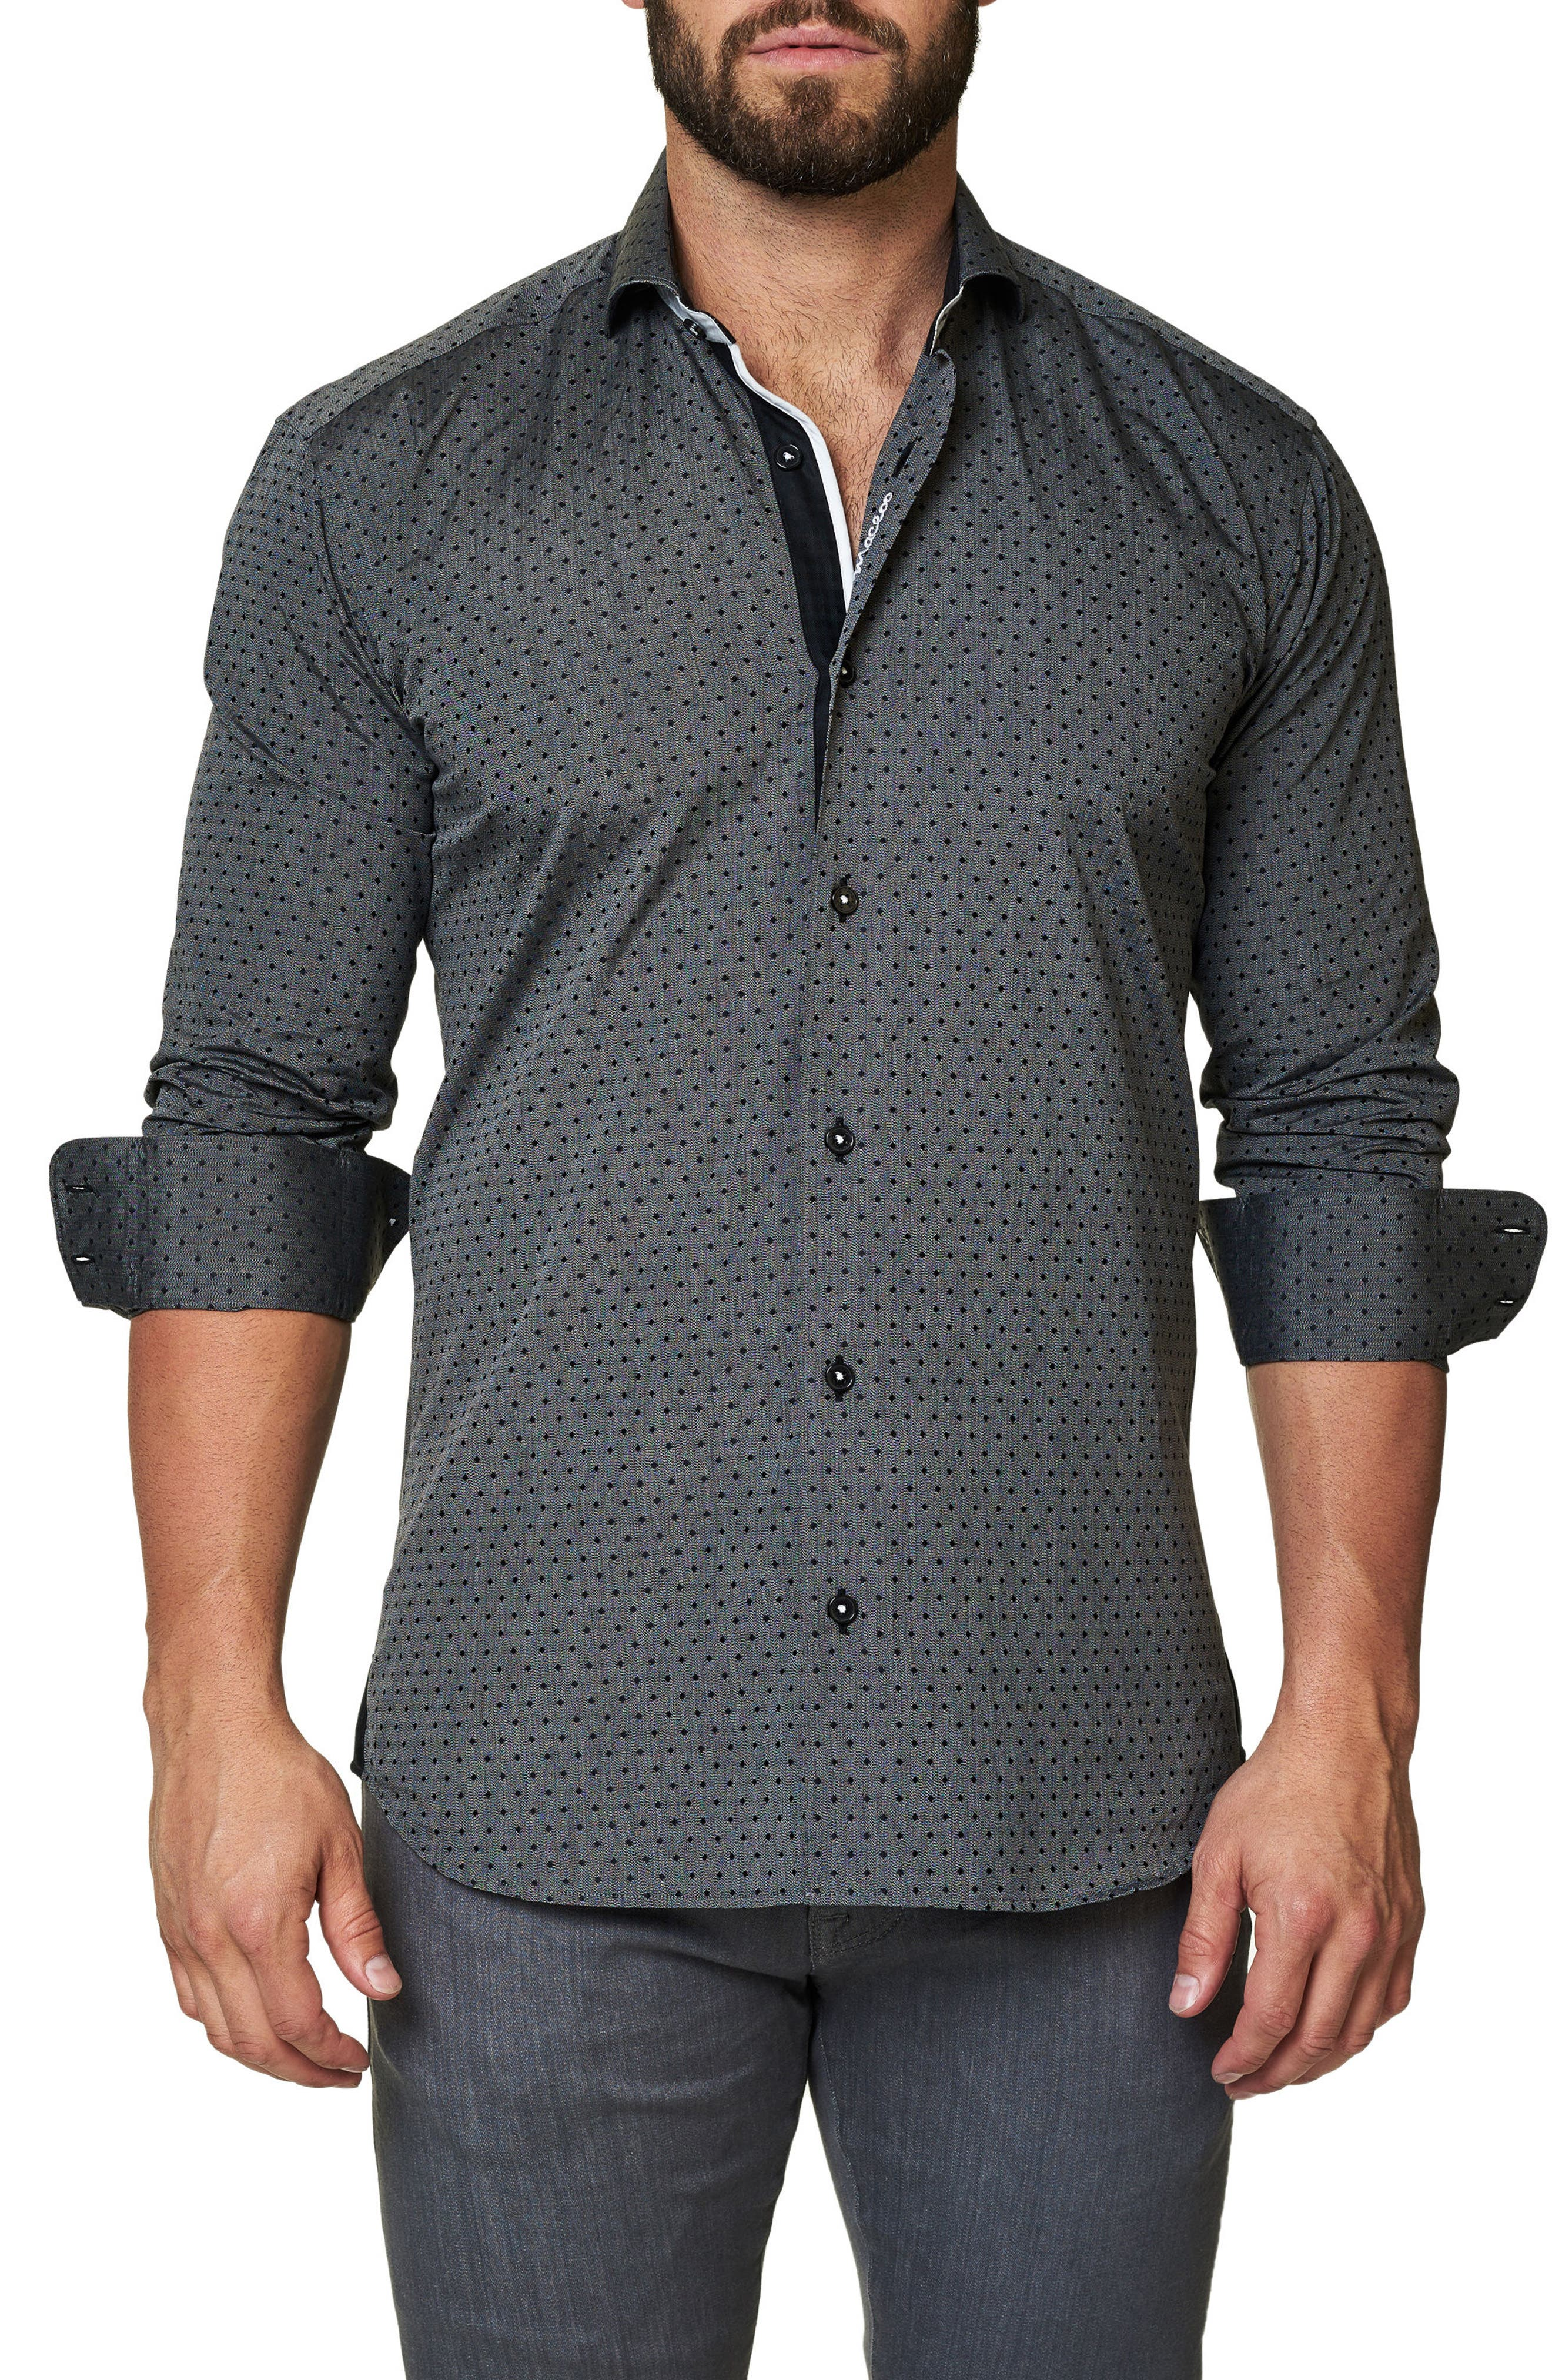 Main Image - Maceoo Trim Fit Dot Print Sport Shirt